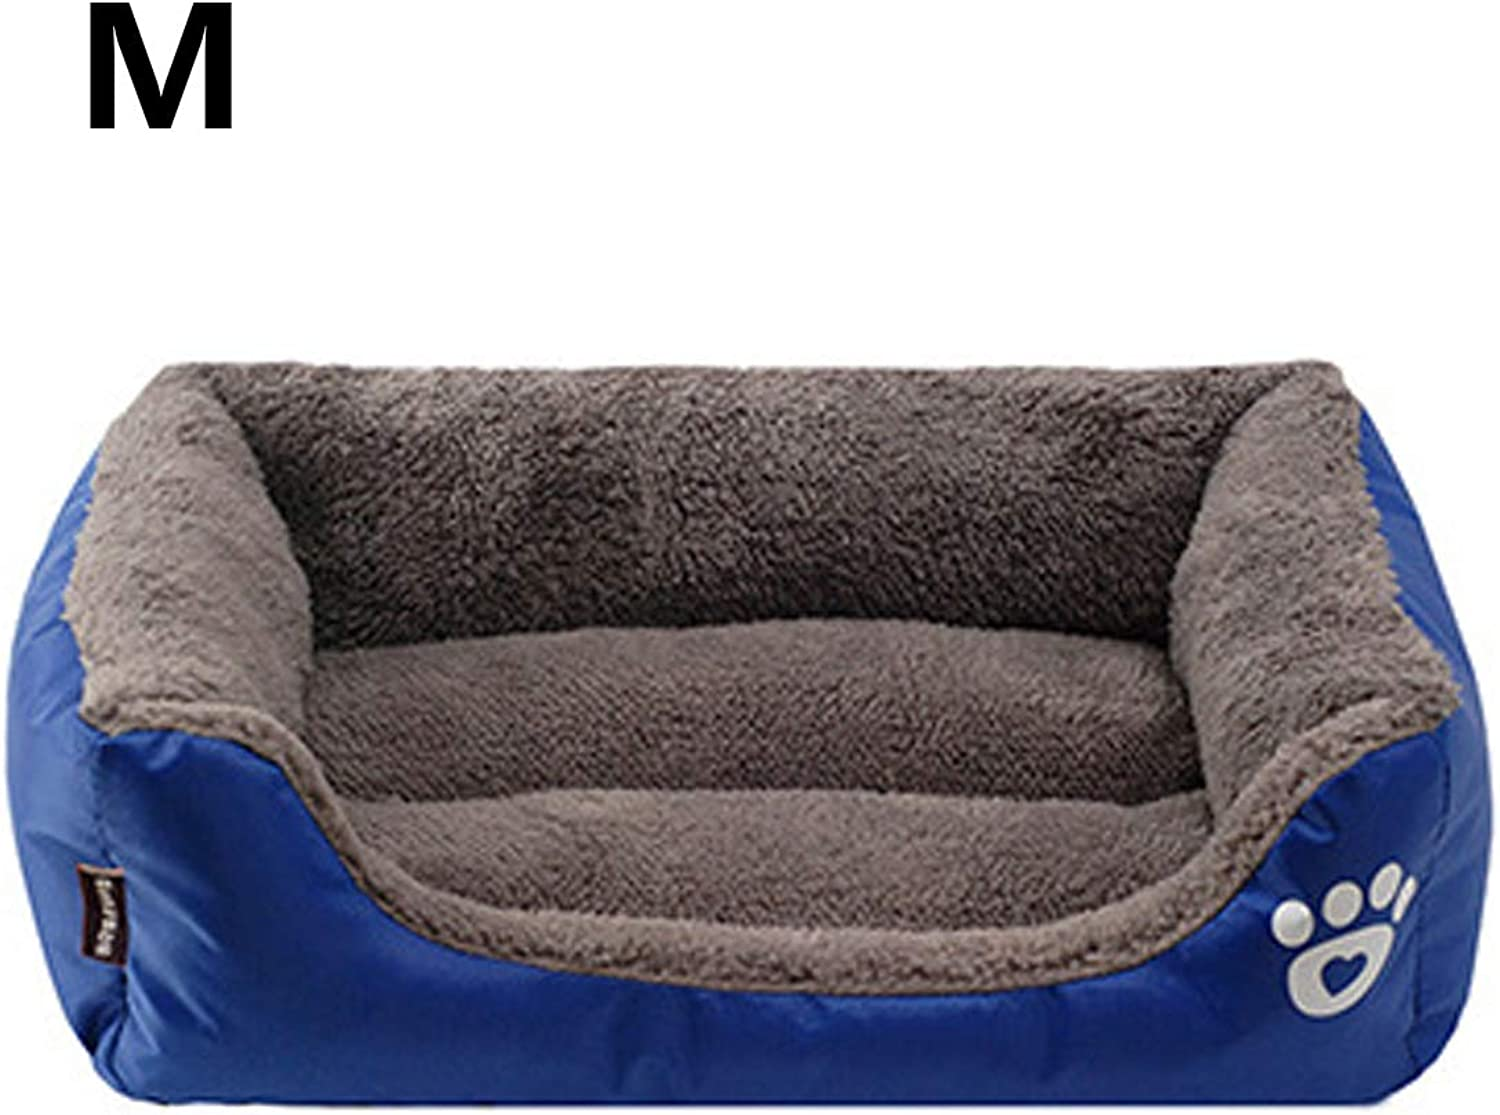 Cookisn Dog Beds Sofas Bed for Dog Cat Pet Warming Dog Footprint House Soft Nest Dog Baskets Fall and Winter Warm Kennel for Cat Puppy Royal bluee 58X45X14cm